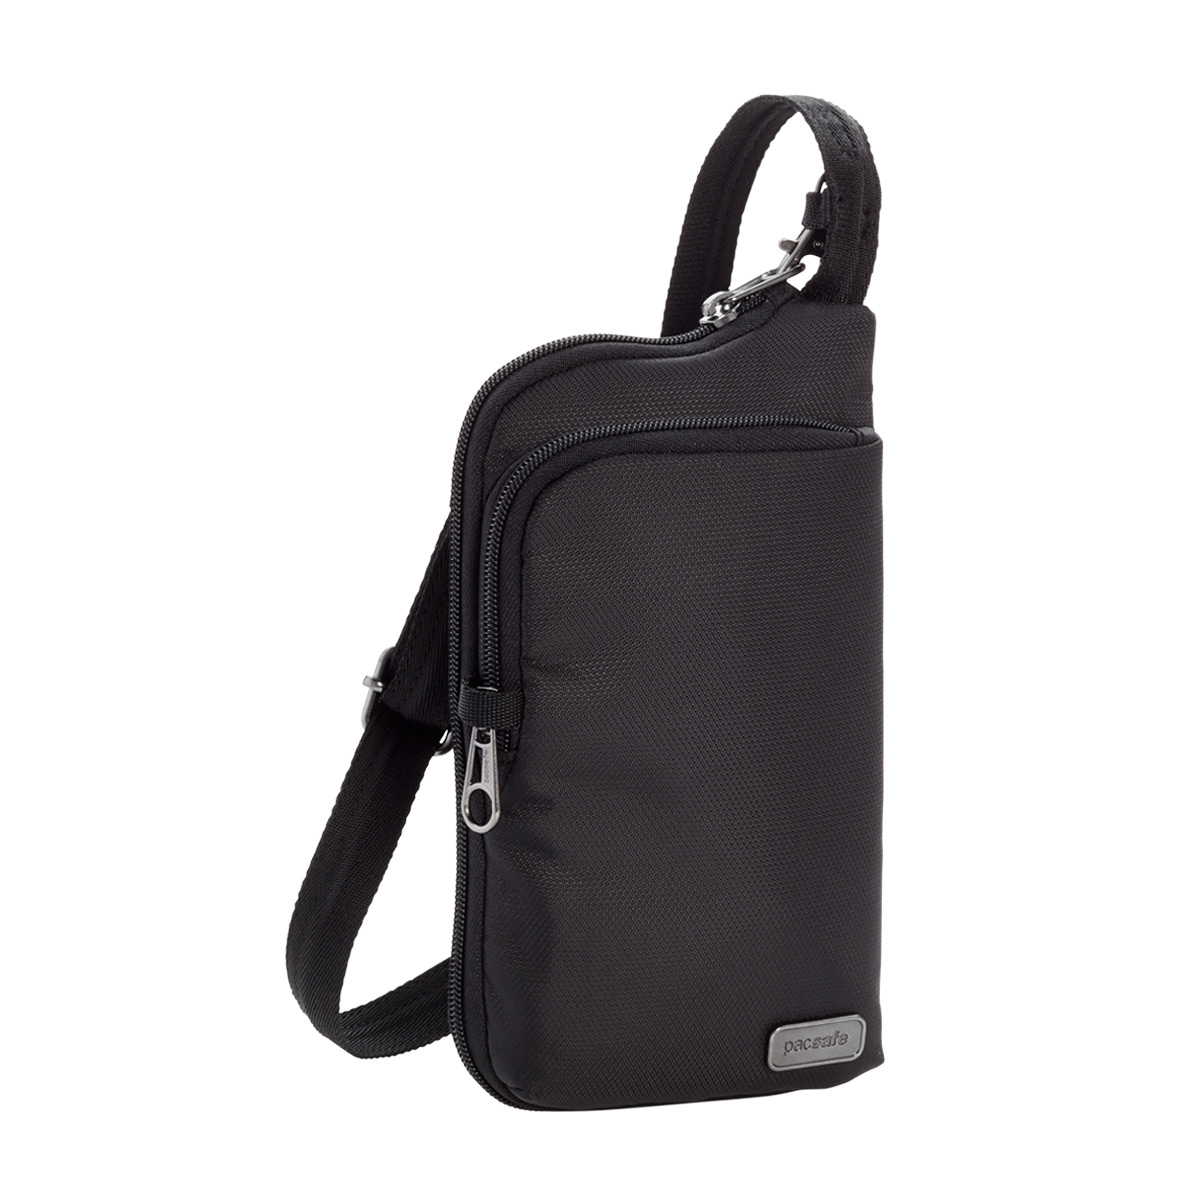 Pacsafe Black Daysafe Tech Crossbody